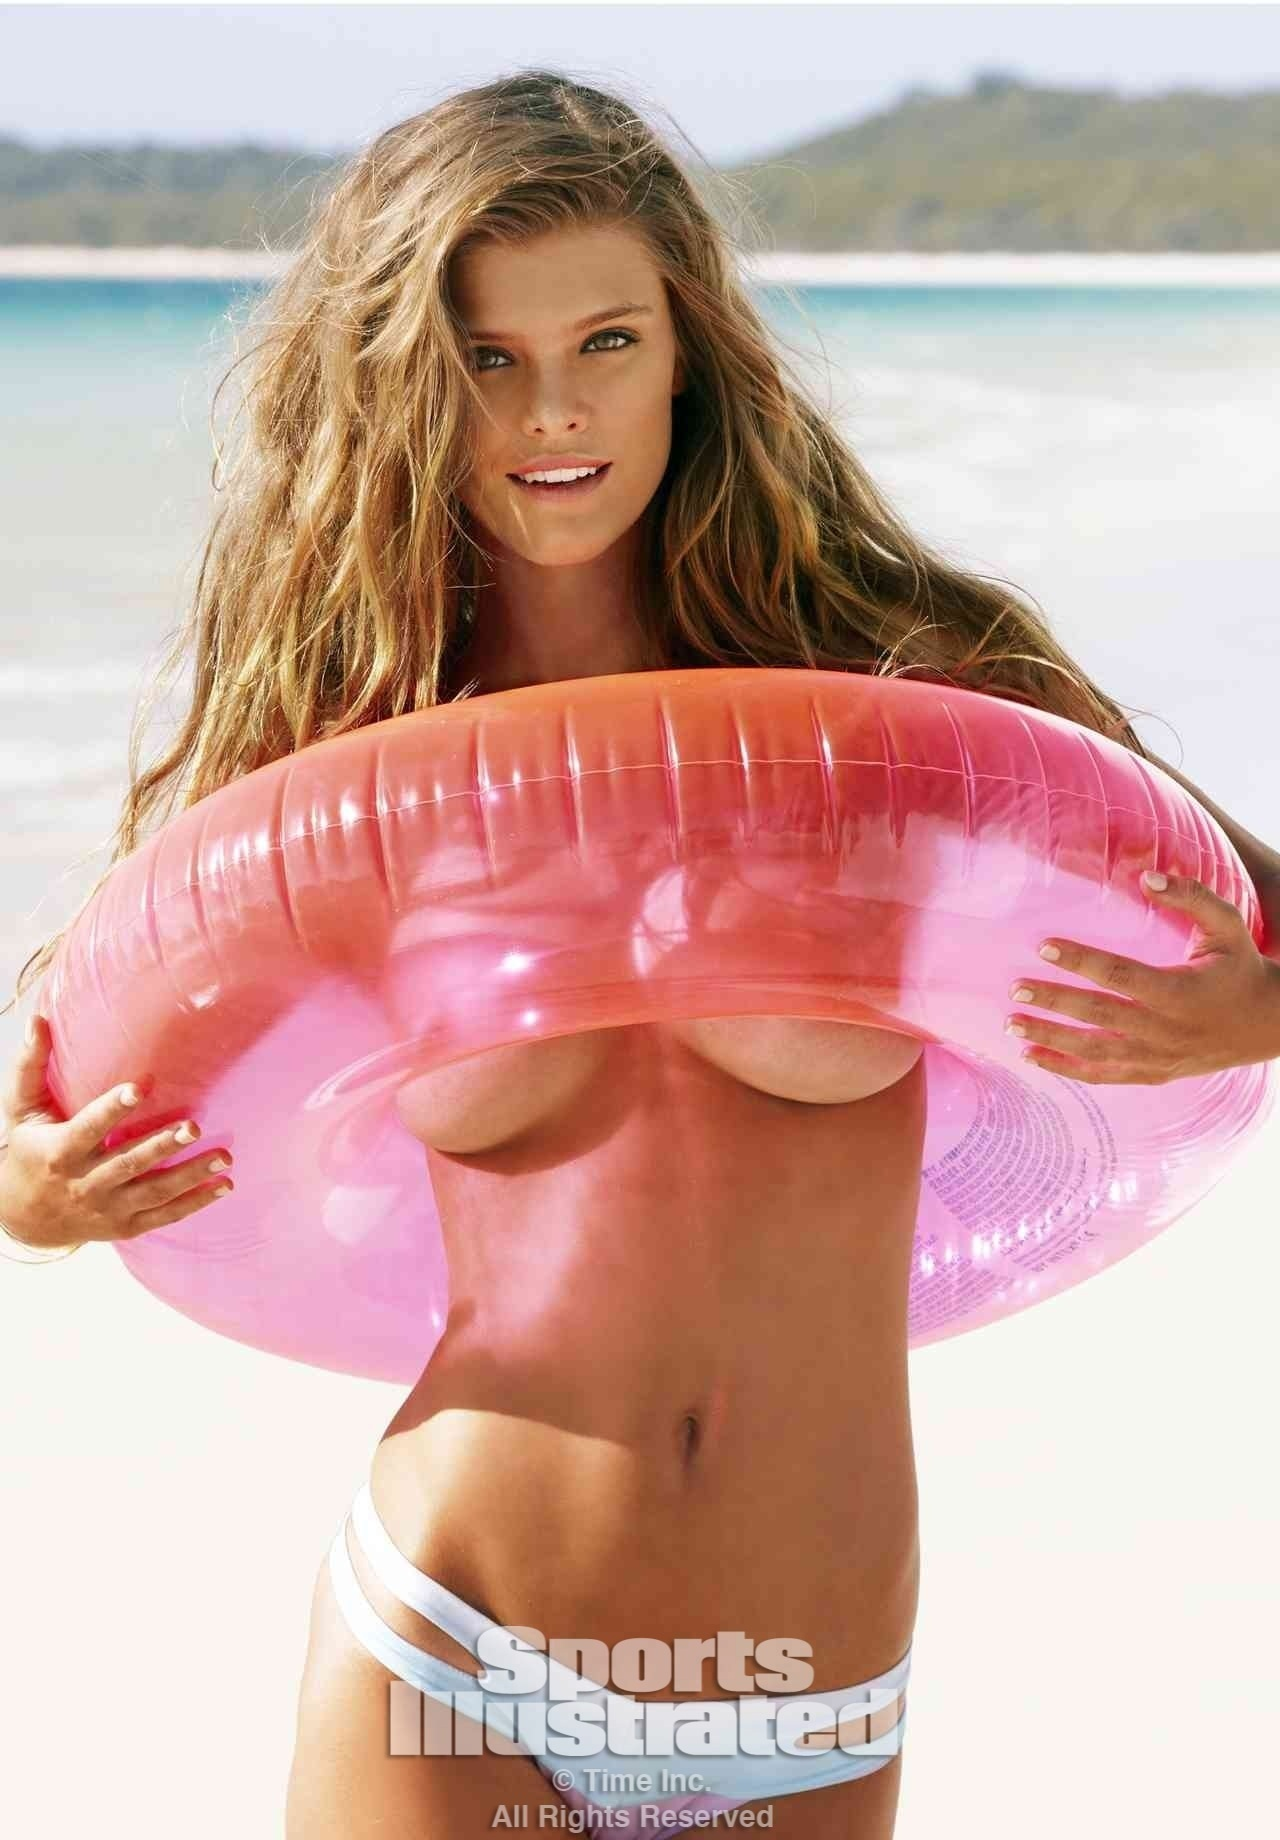 Nina Agdal Si Swimsuit Web Set Swimsuit Cd Ca Big Sports Illustrated